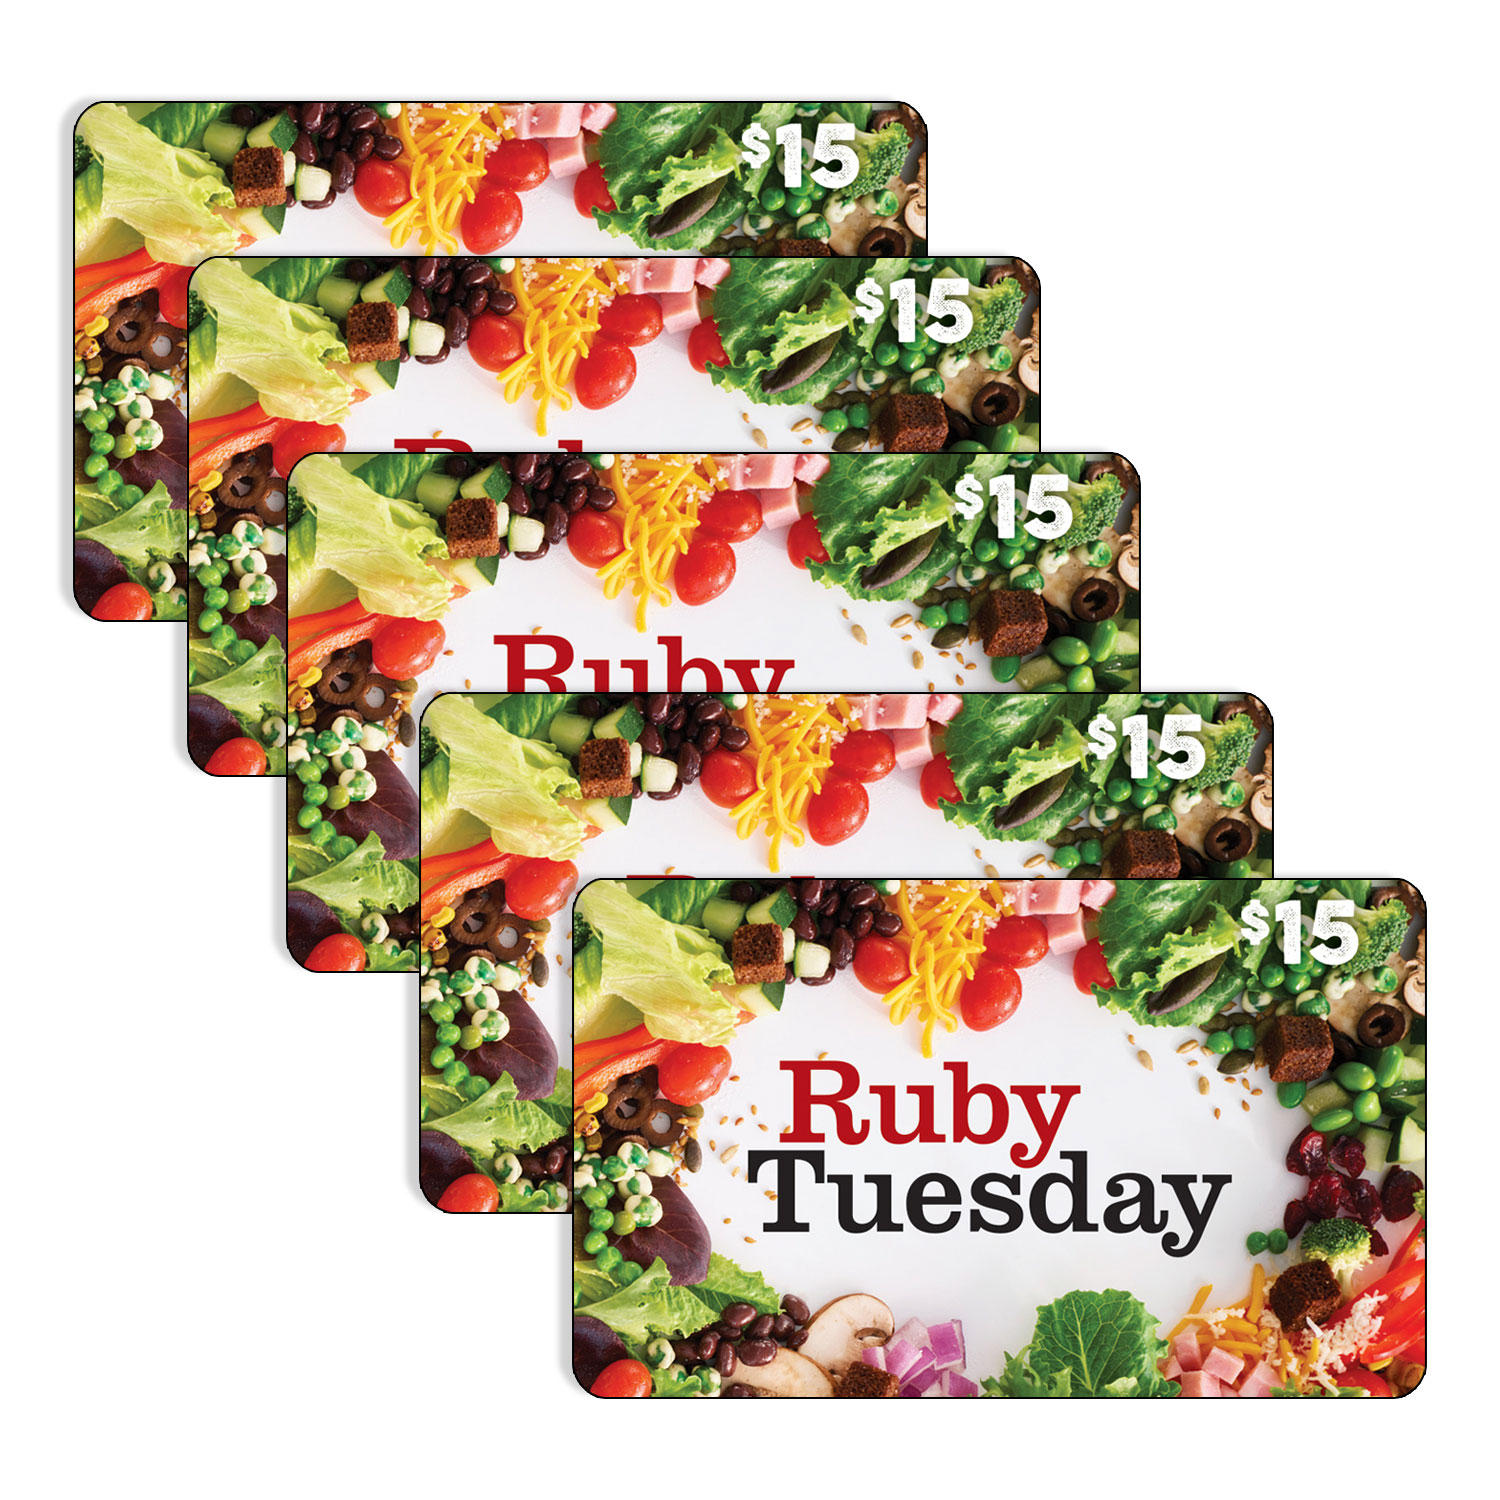 Ruby Tuesday $75 Value Gift Cards